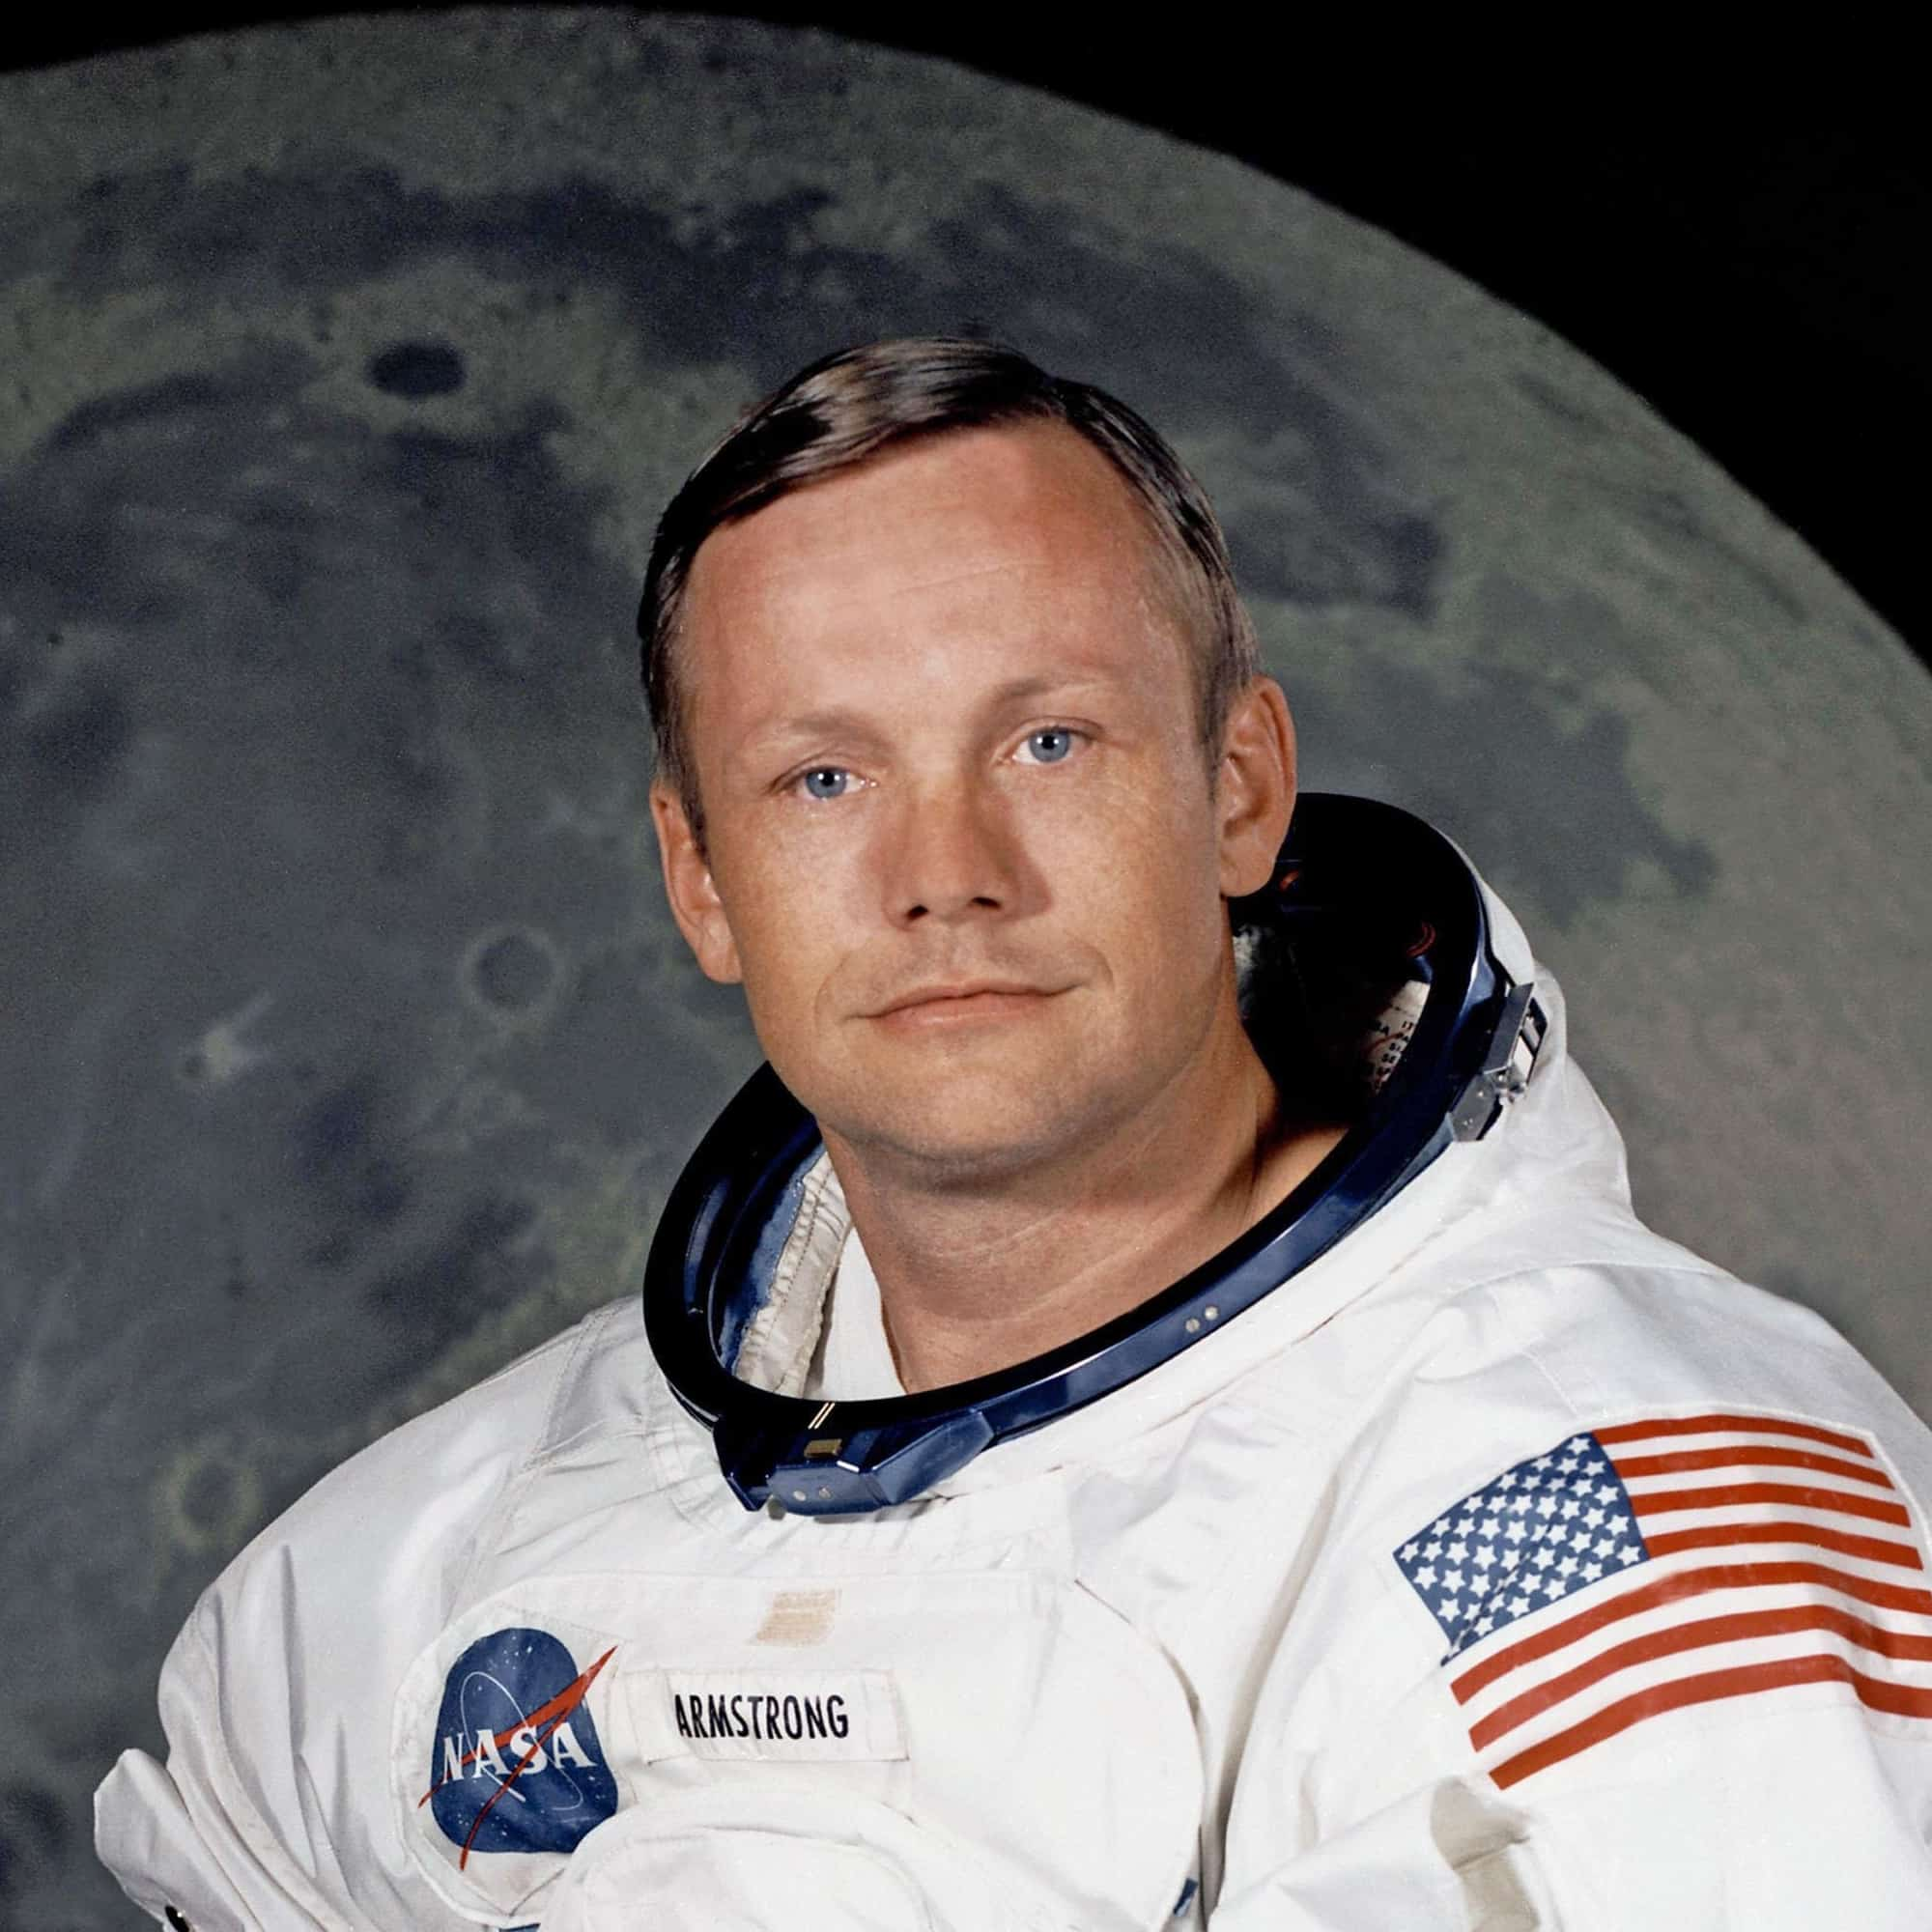 neil armstrong facts, people facts